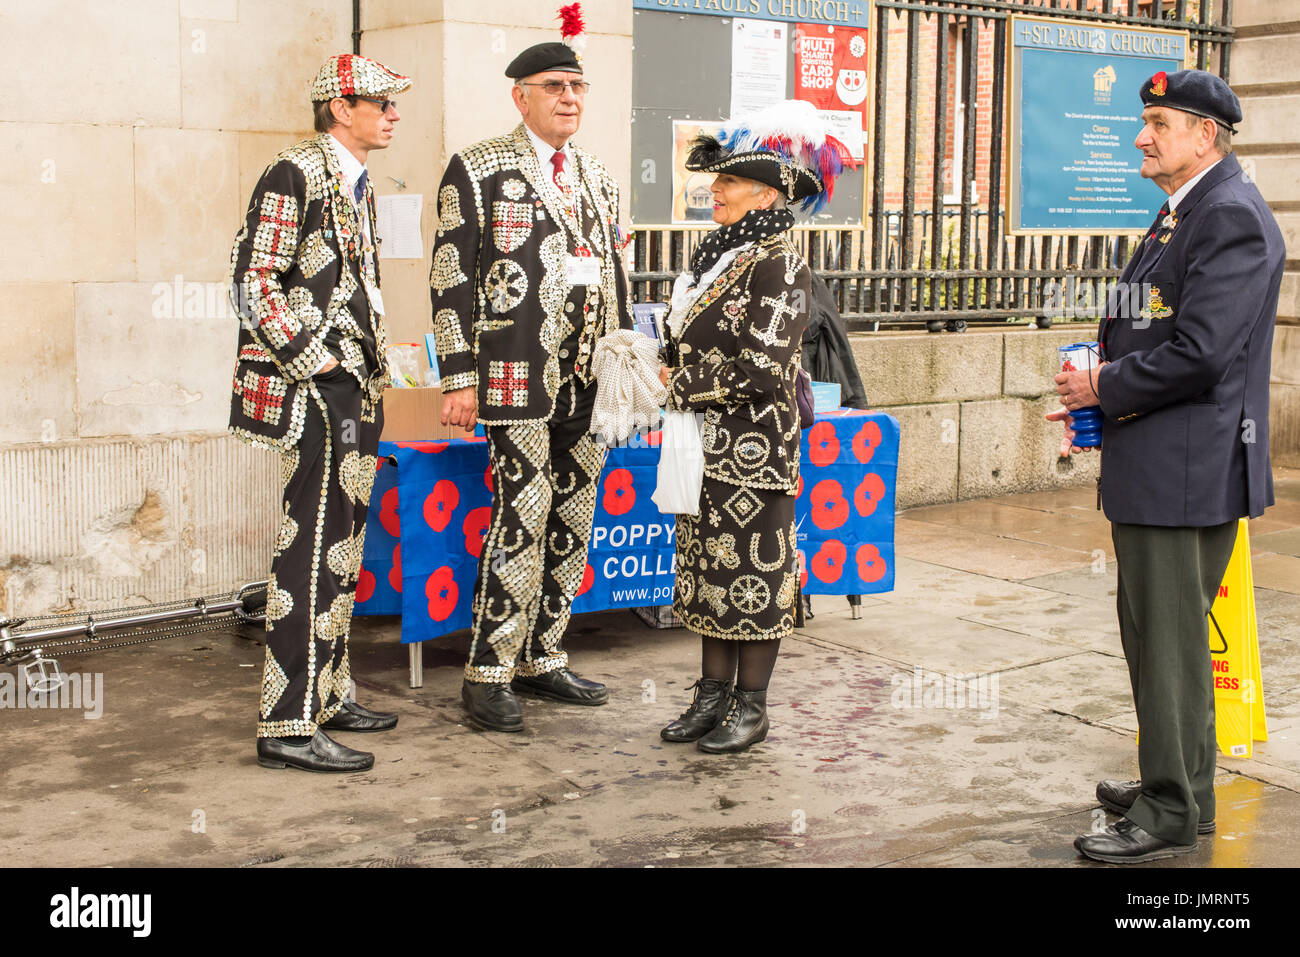 Pearly Kings and a Pearly Queen helping to raise money for the poppy appeal with an ex-serviceman in his beret and blazer in London. - Stock Image